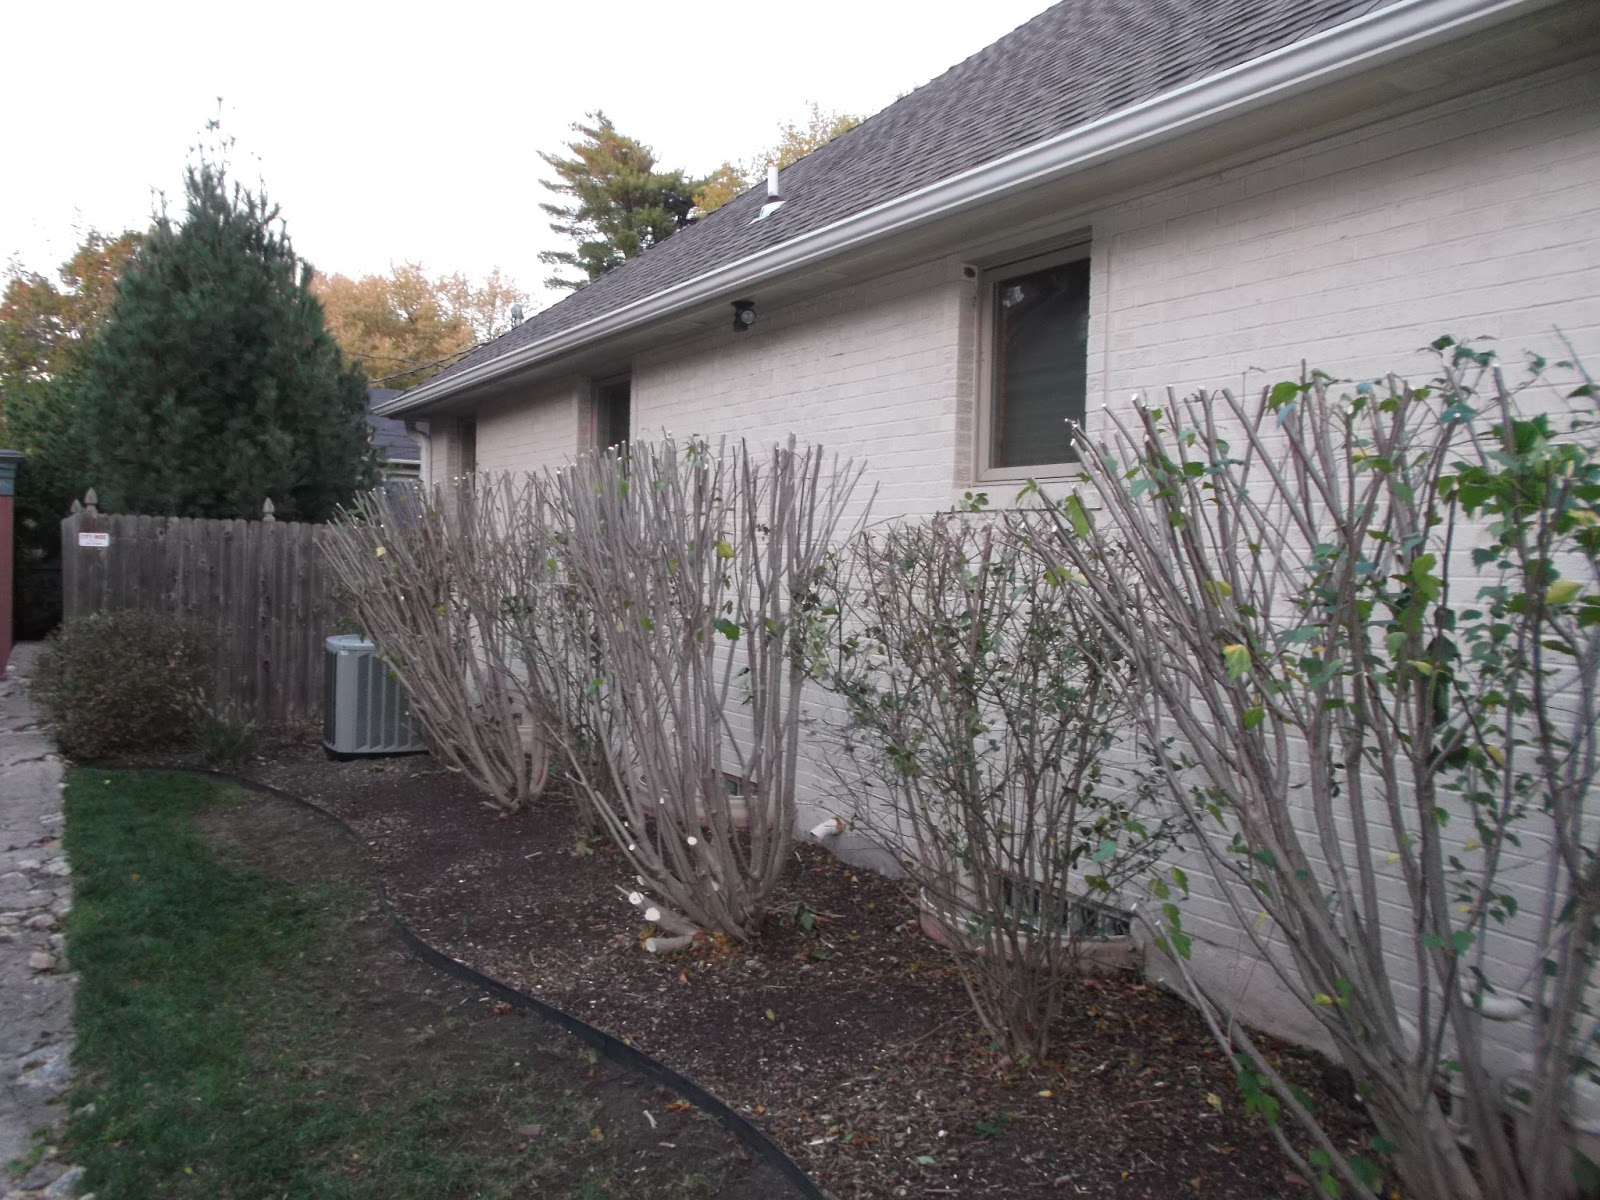 How to prune a rose bush - Here We Have Some Rose Of Sharon Bushes They Were Massive Before We Pruned Them Back You Can See The Dirt In Front Of The Edging No Grass Would Grow